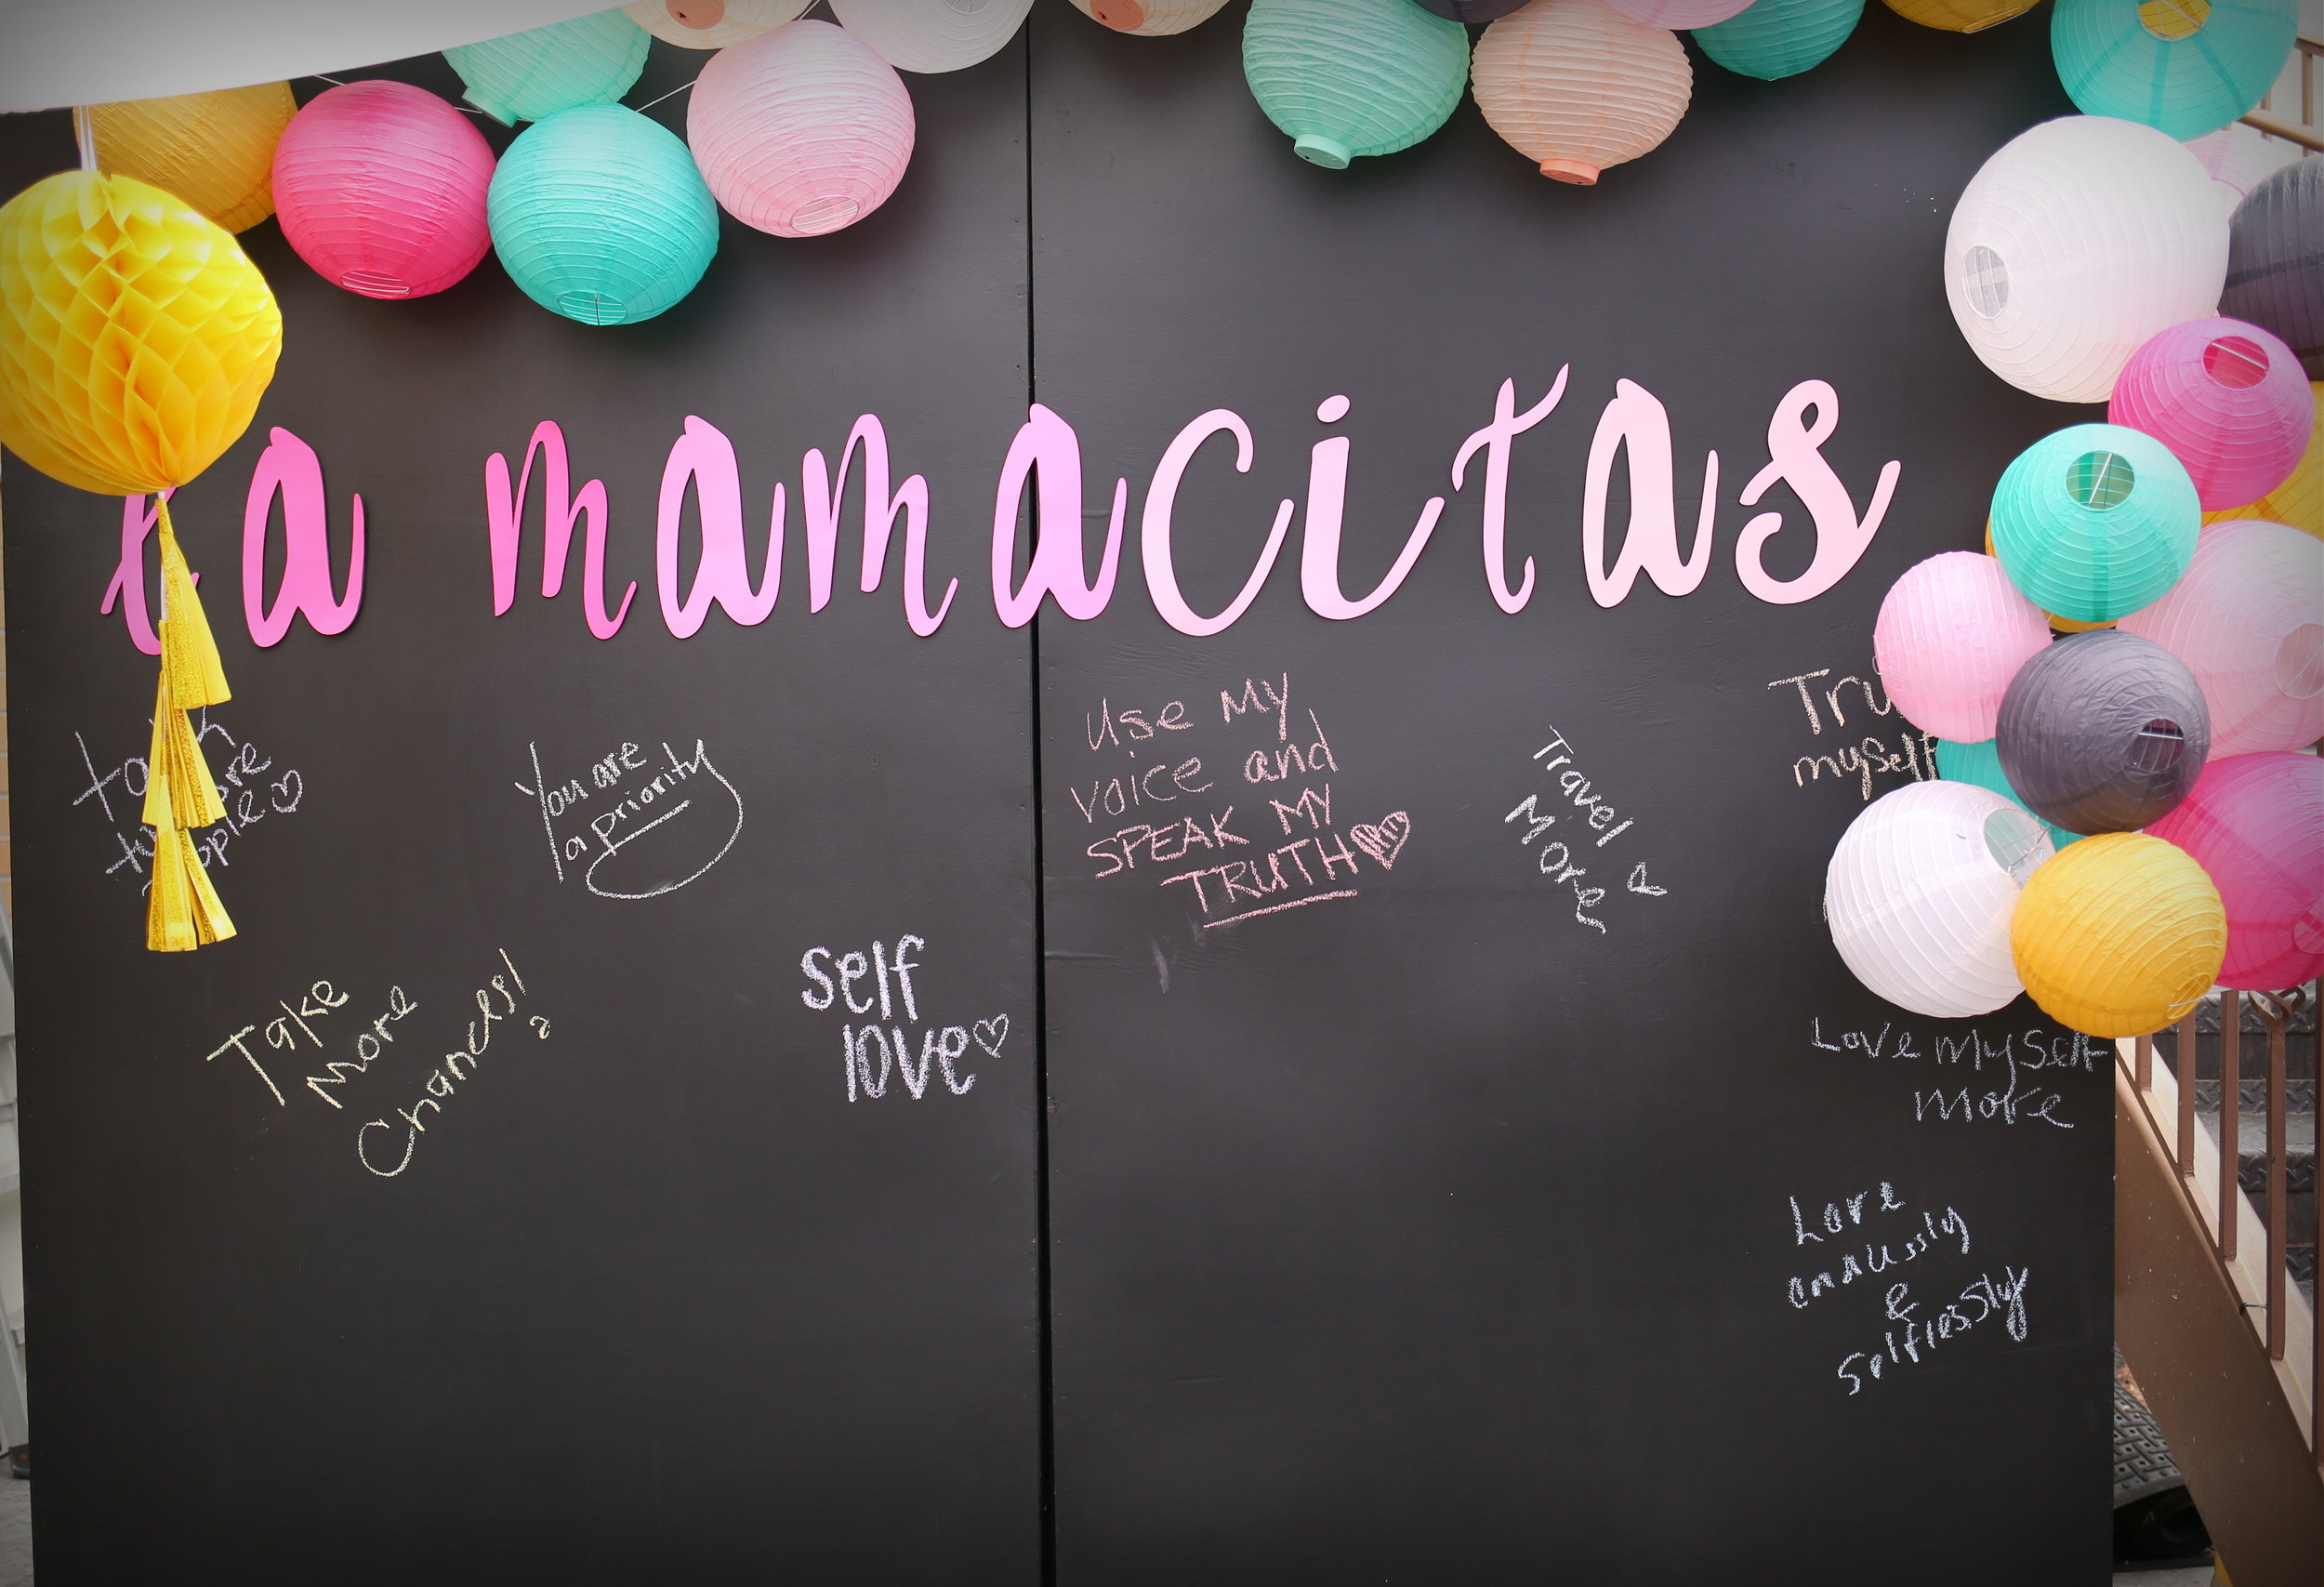 LFR  personalized this chalkboard wall for our Mamacita Market. Beautiful work!